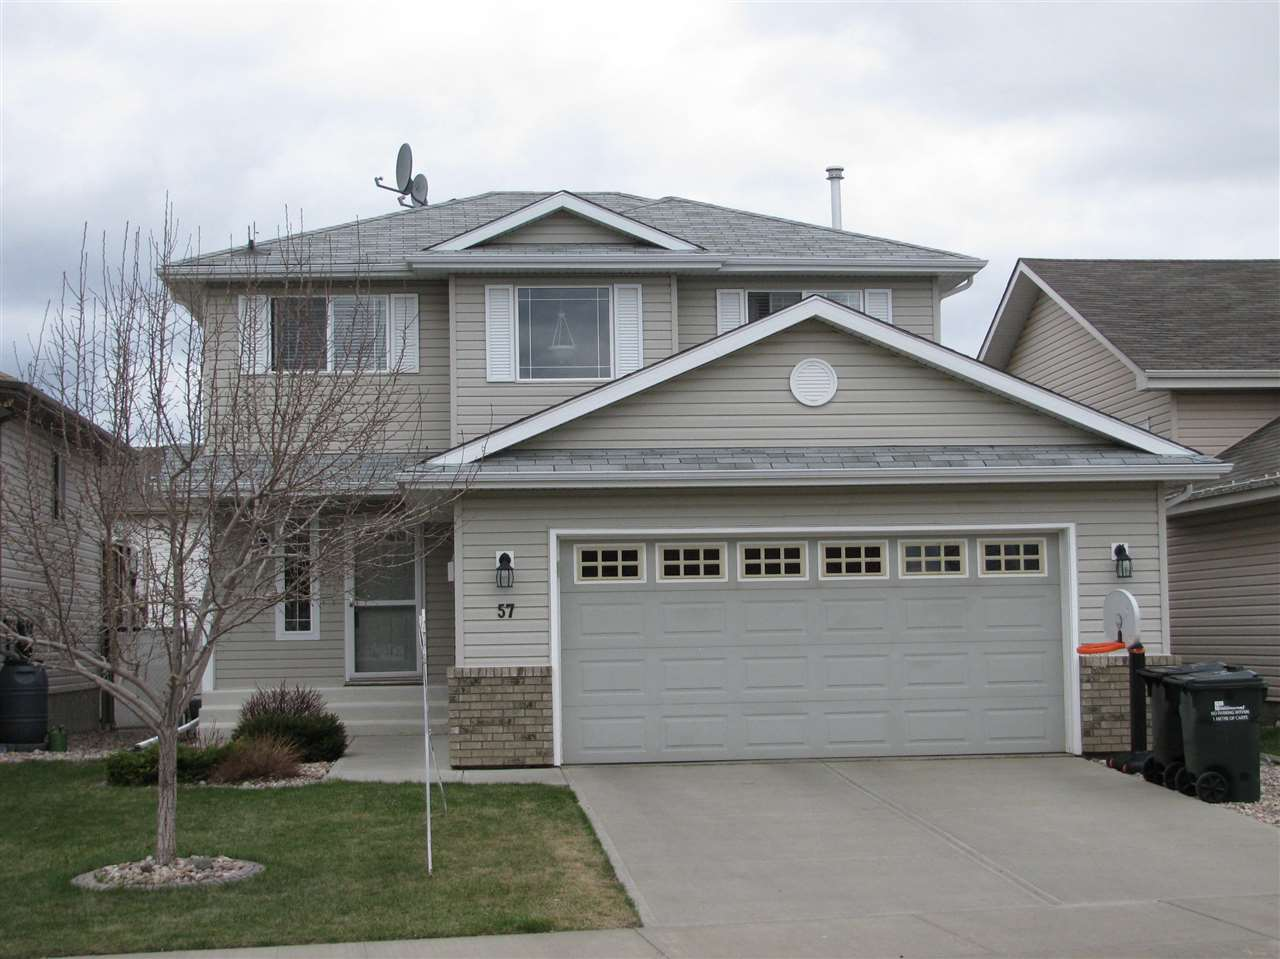 Main Photo: 57 ORCHID Crescent: Sherwood Park House for sale : MLS(r) # E4066480